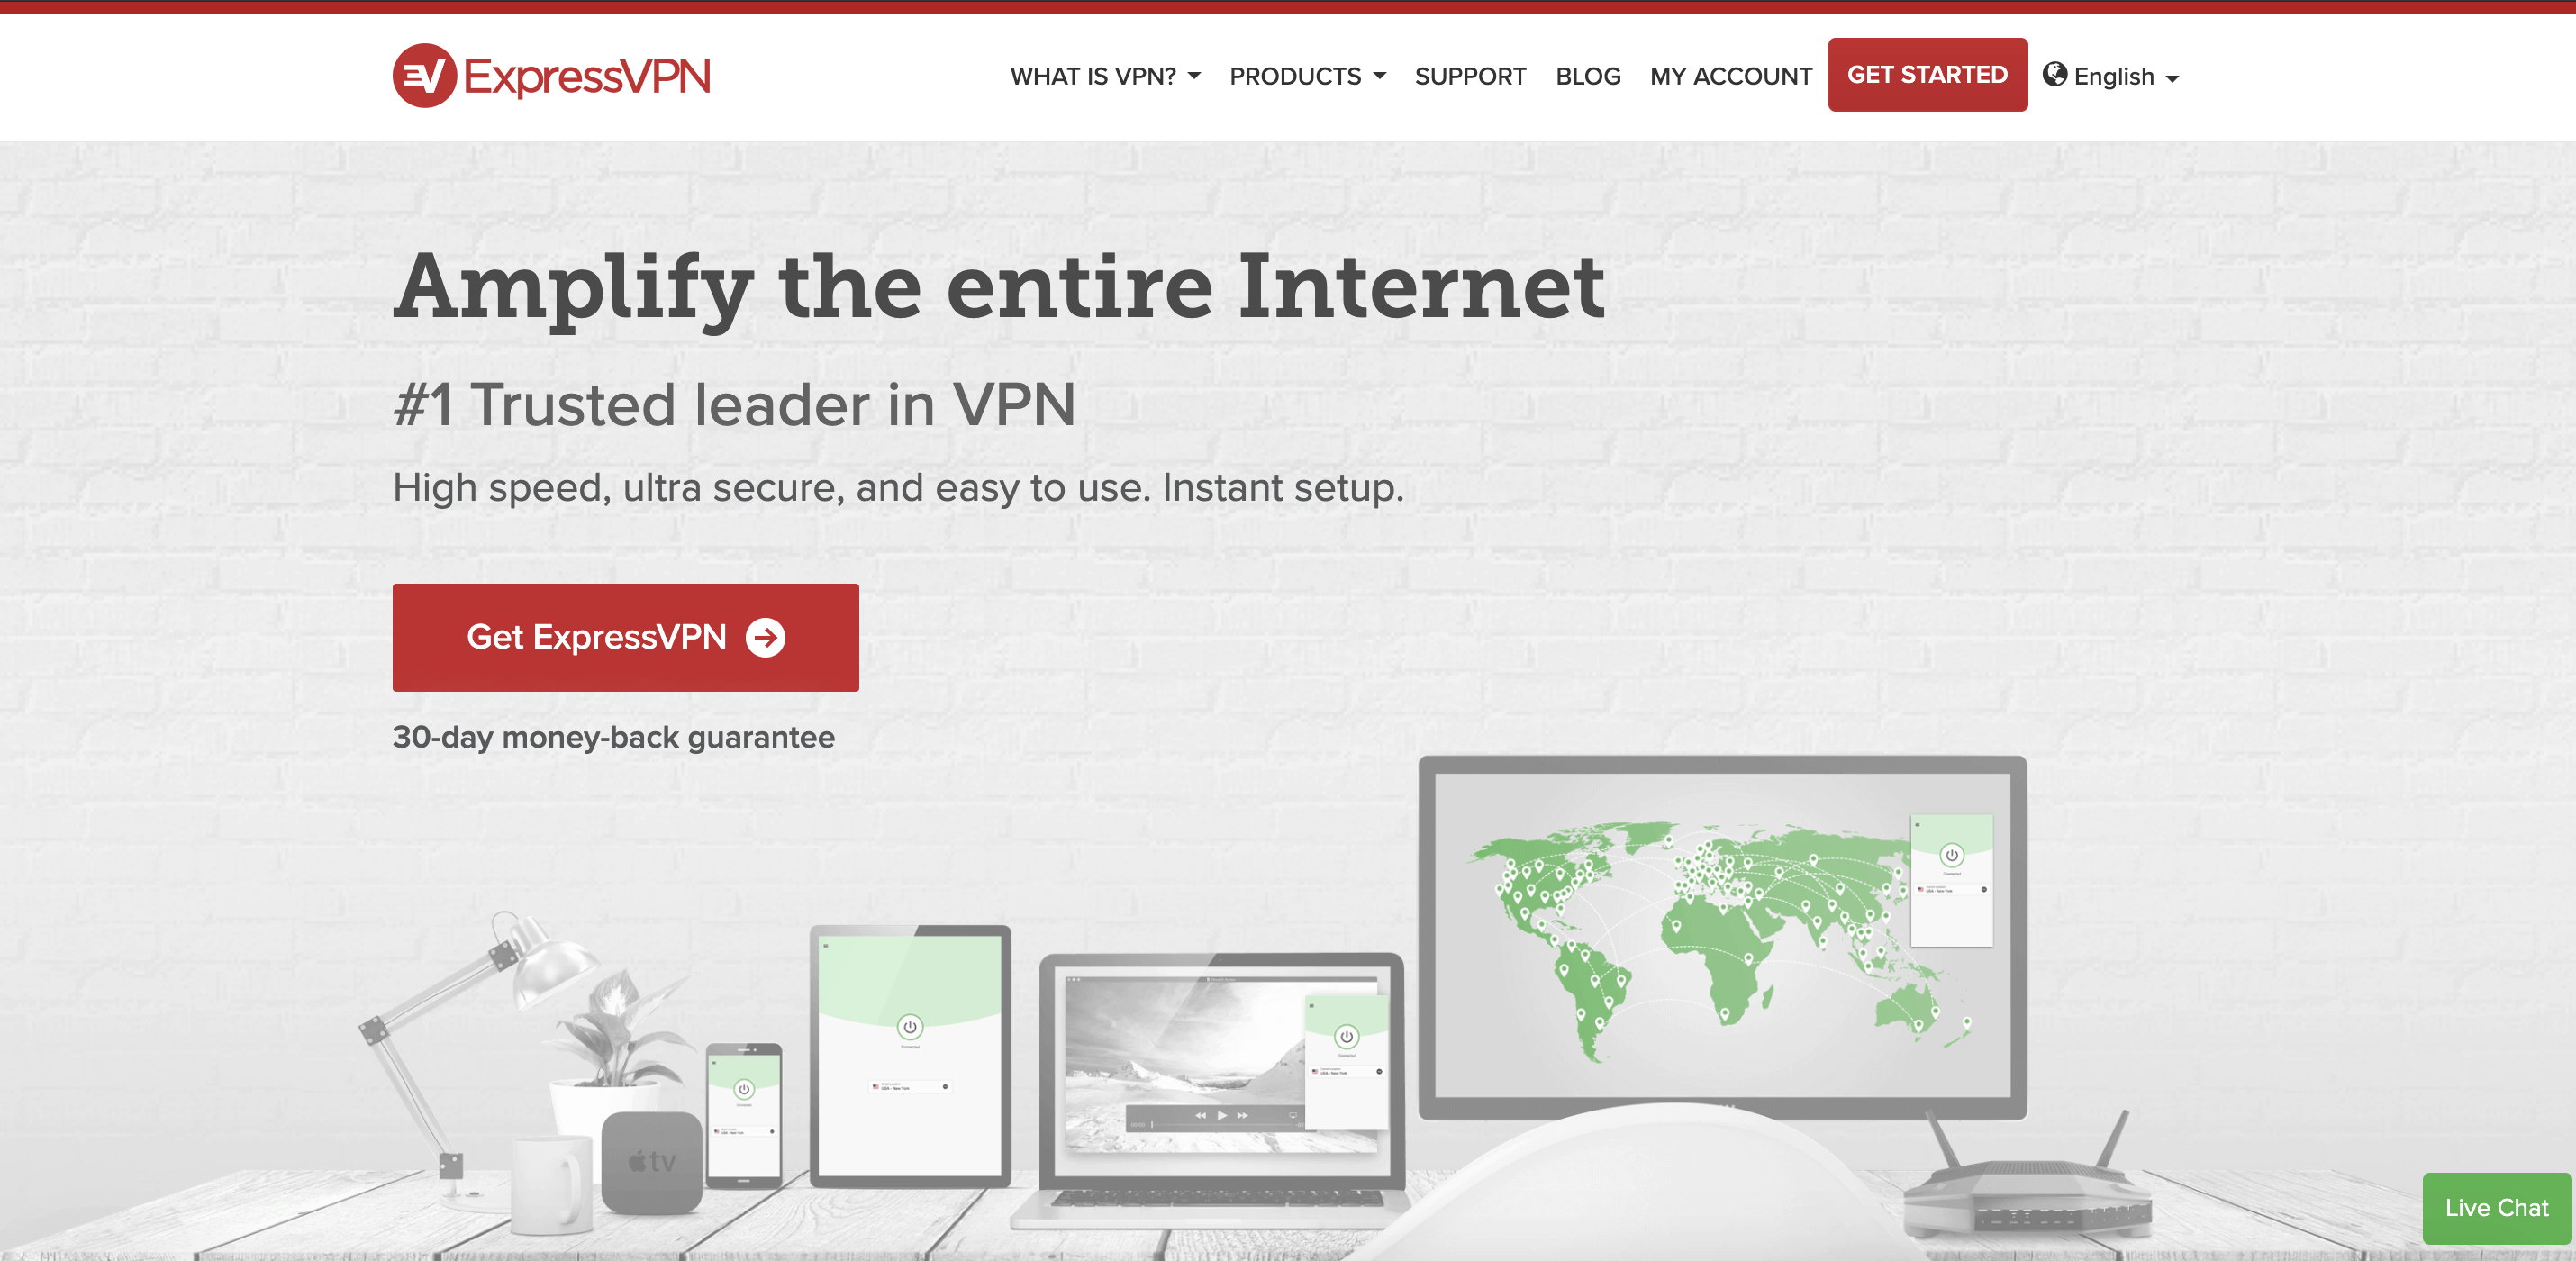 ExpressVPN Review: Is It Better Than NordVPN & PIA? Let's